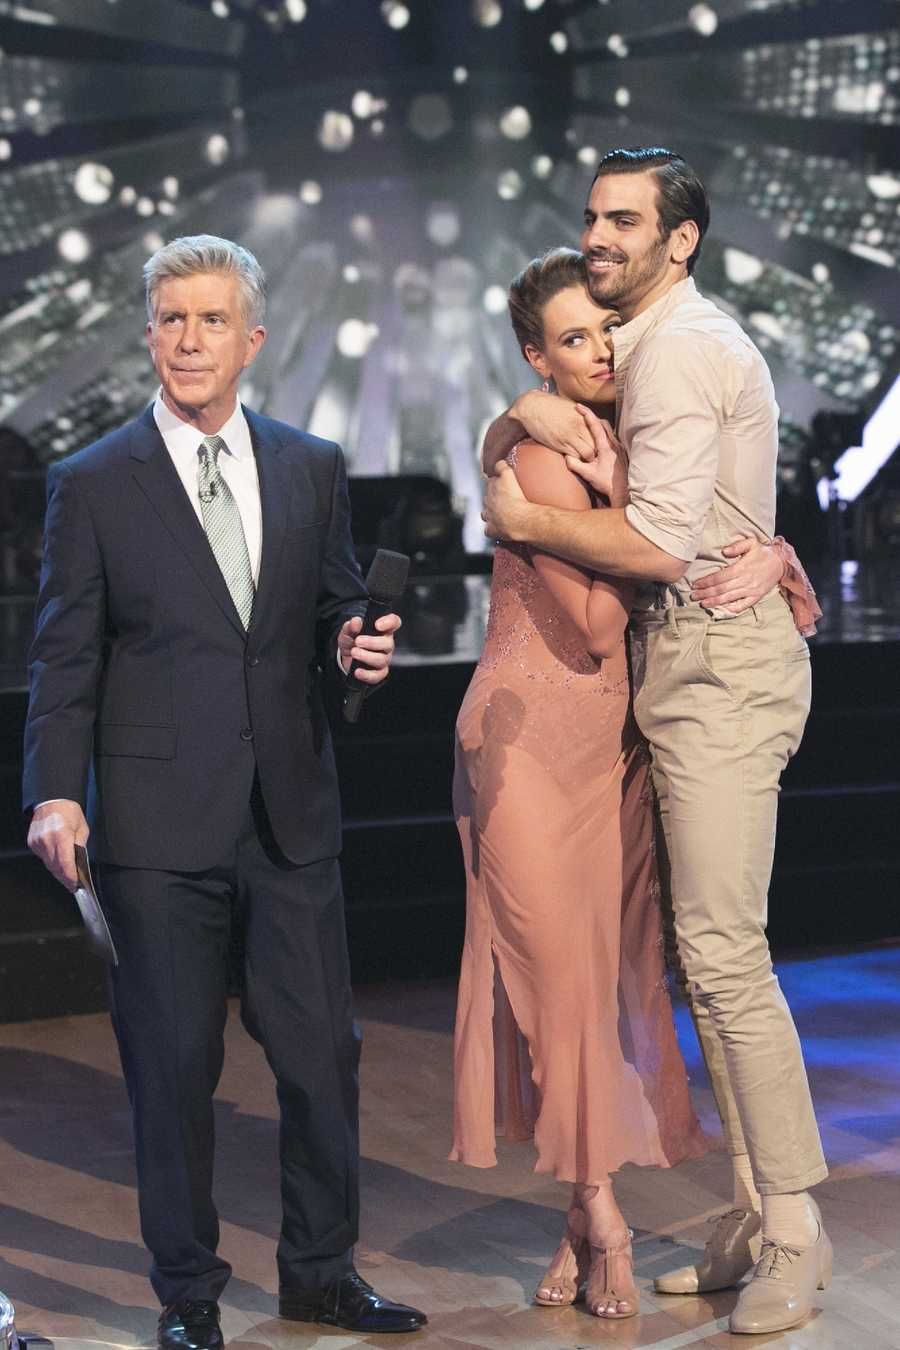 DANCING WITH THE STARS returns Mondays at 7 p.m. CT